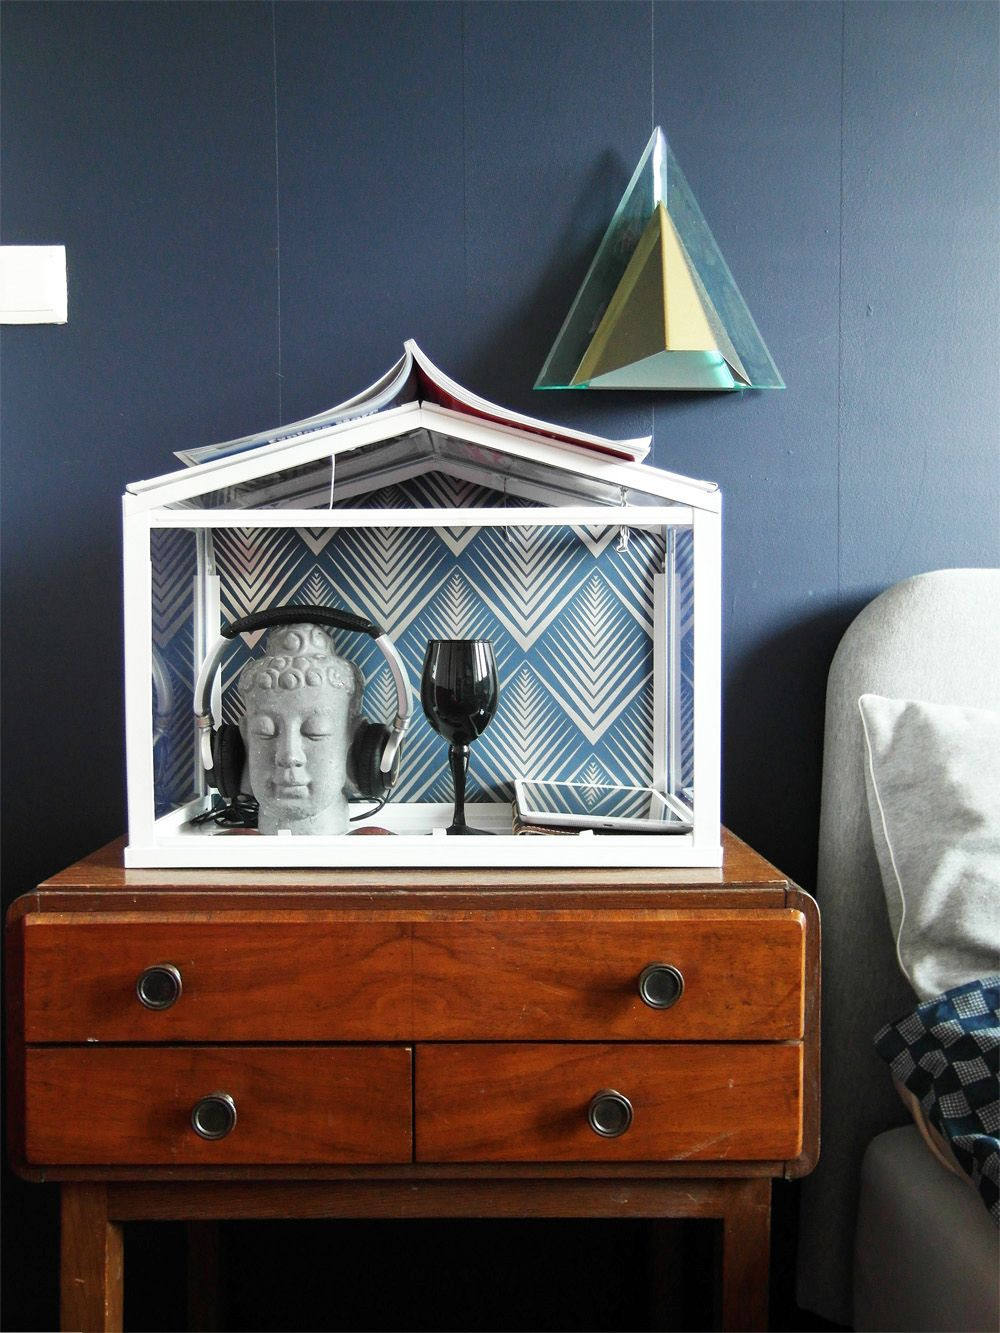 ikea hack terrarium google search nesting pinterest. Black Bedroom Furniture Sets. Home Design Ideas